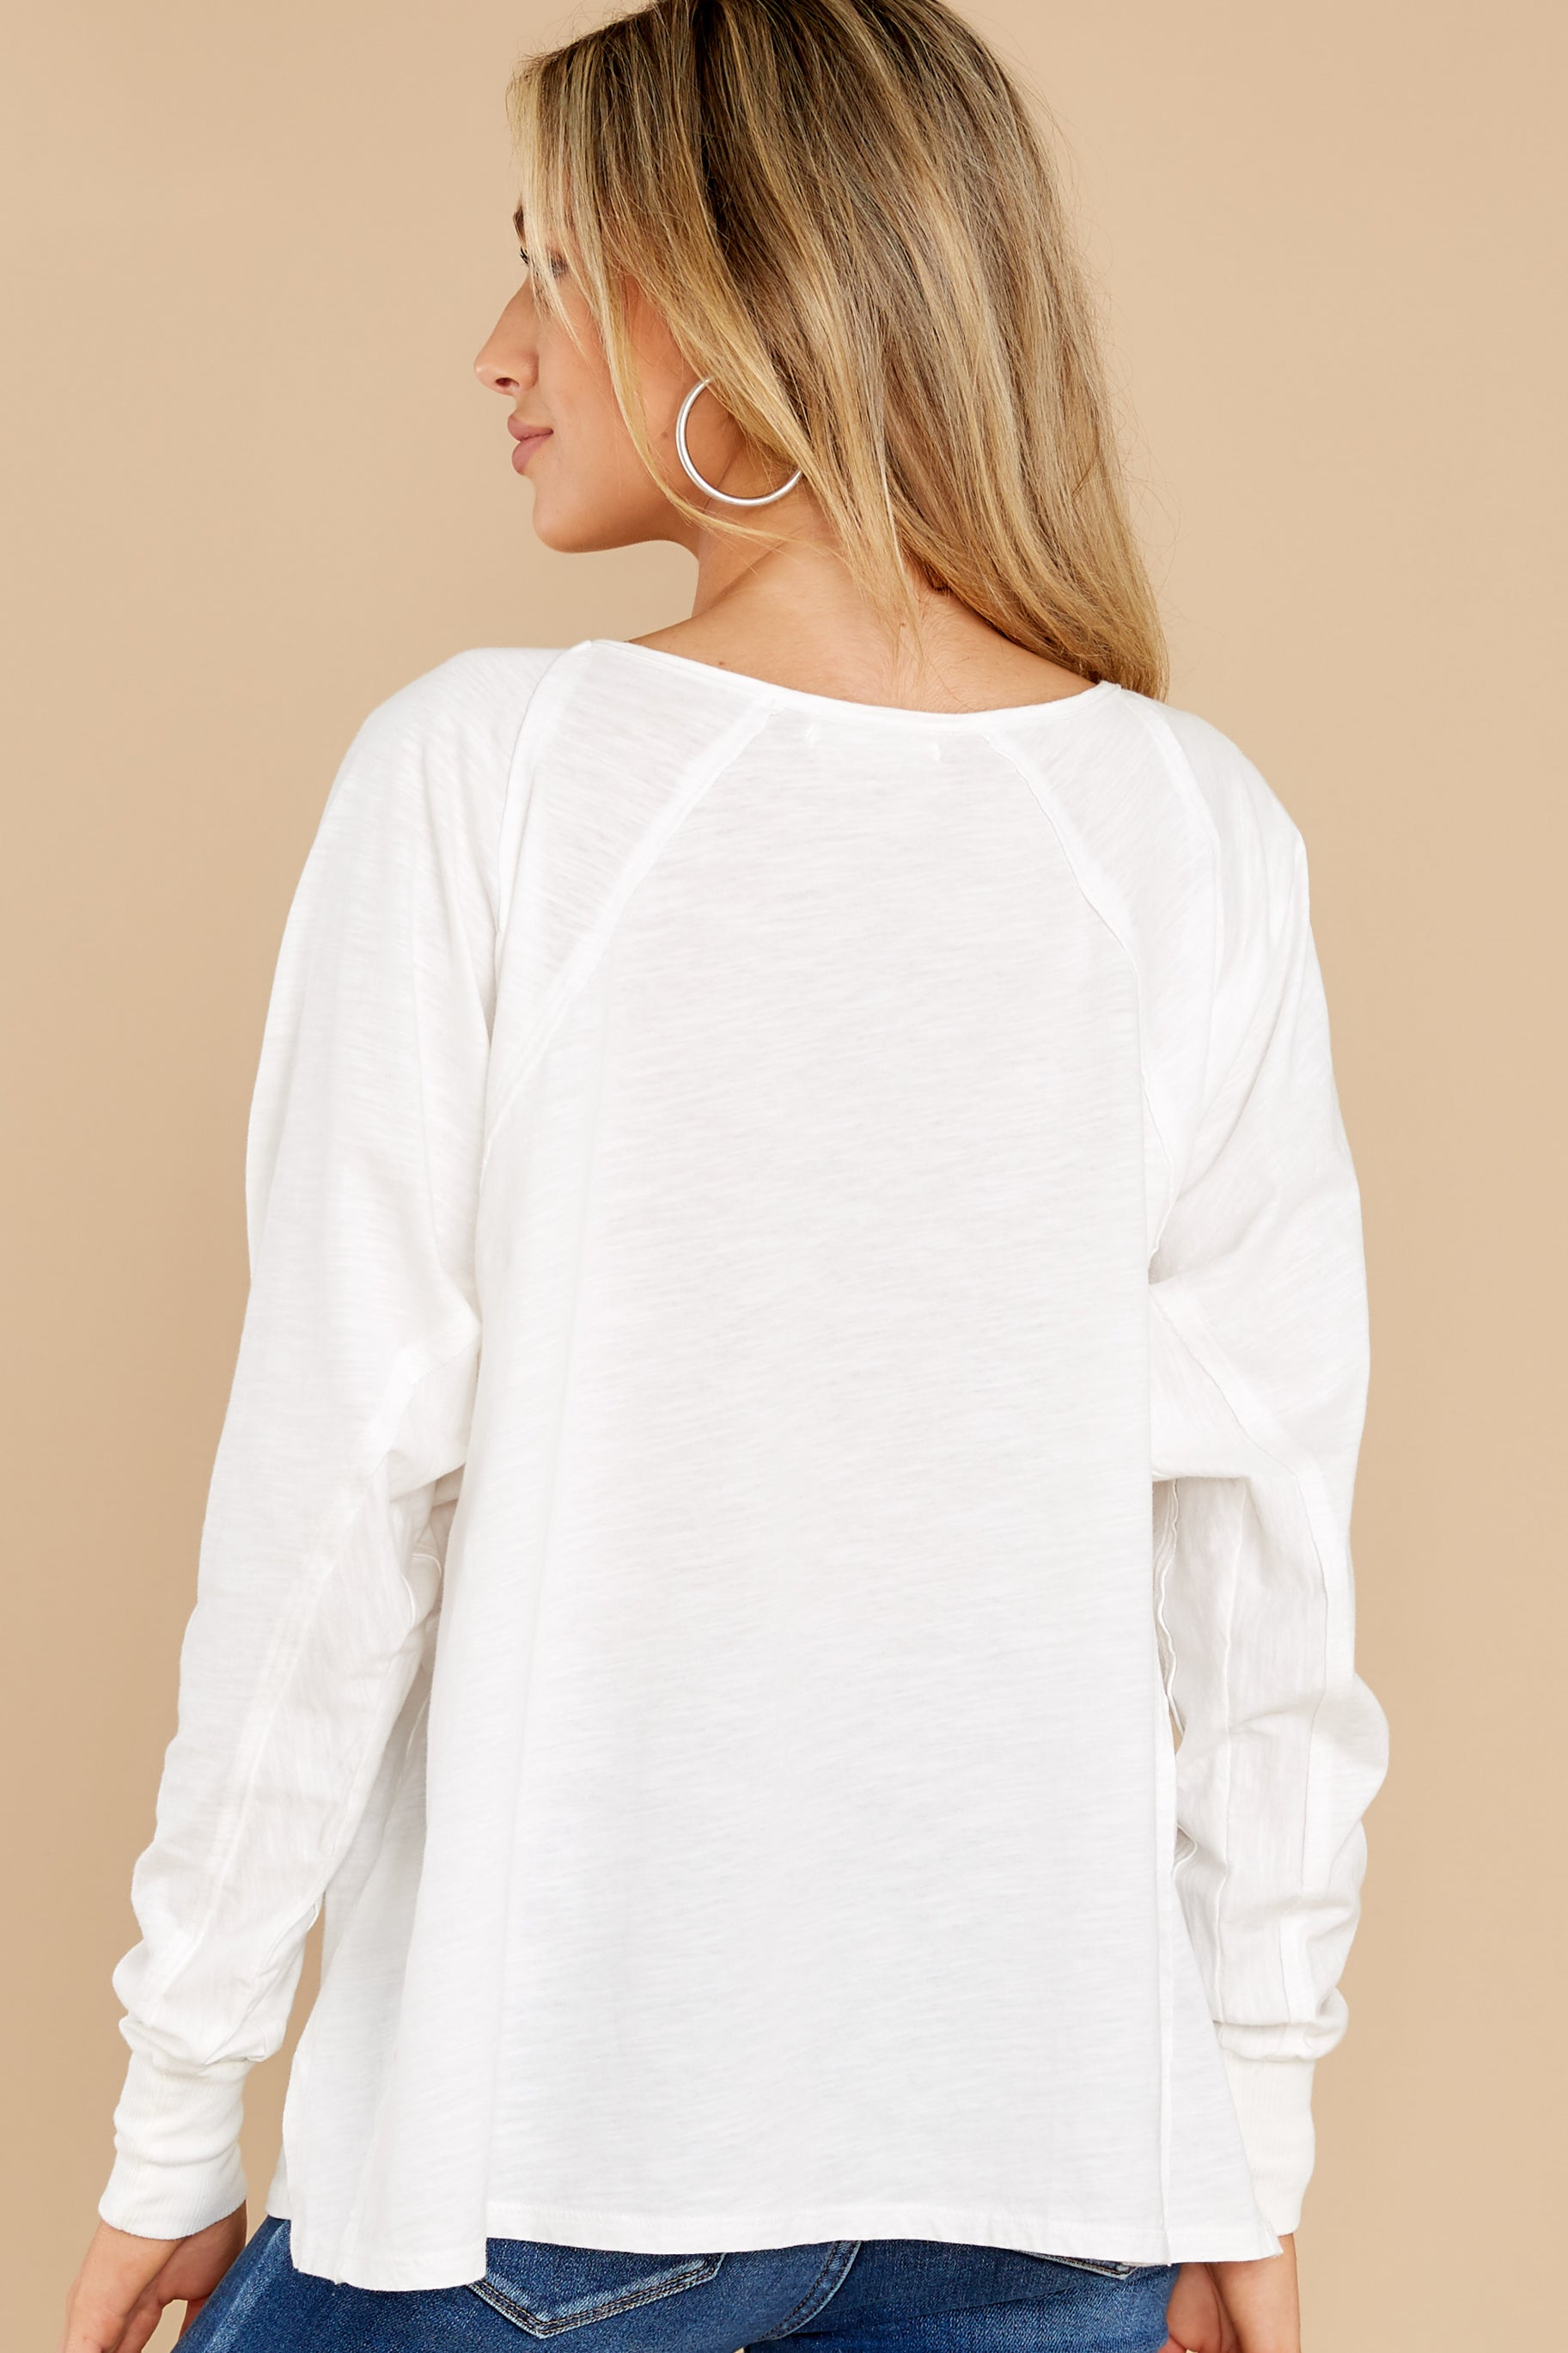 8 Procaffeinating Kind White Top at reddress.com